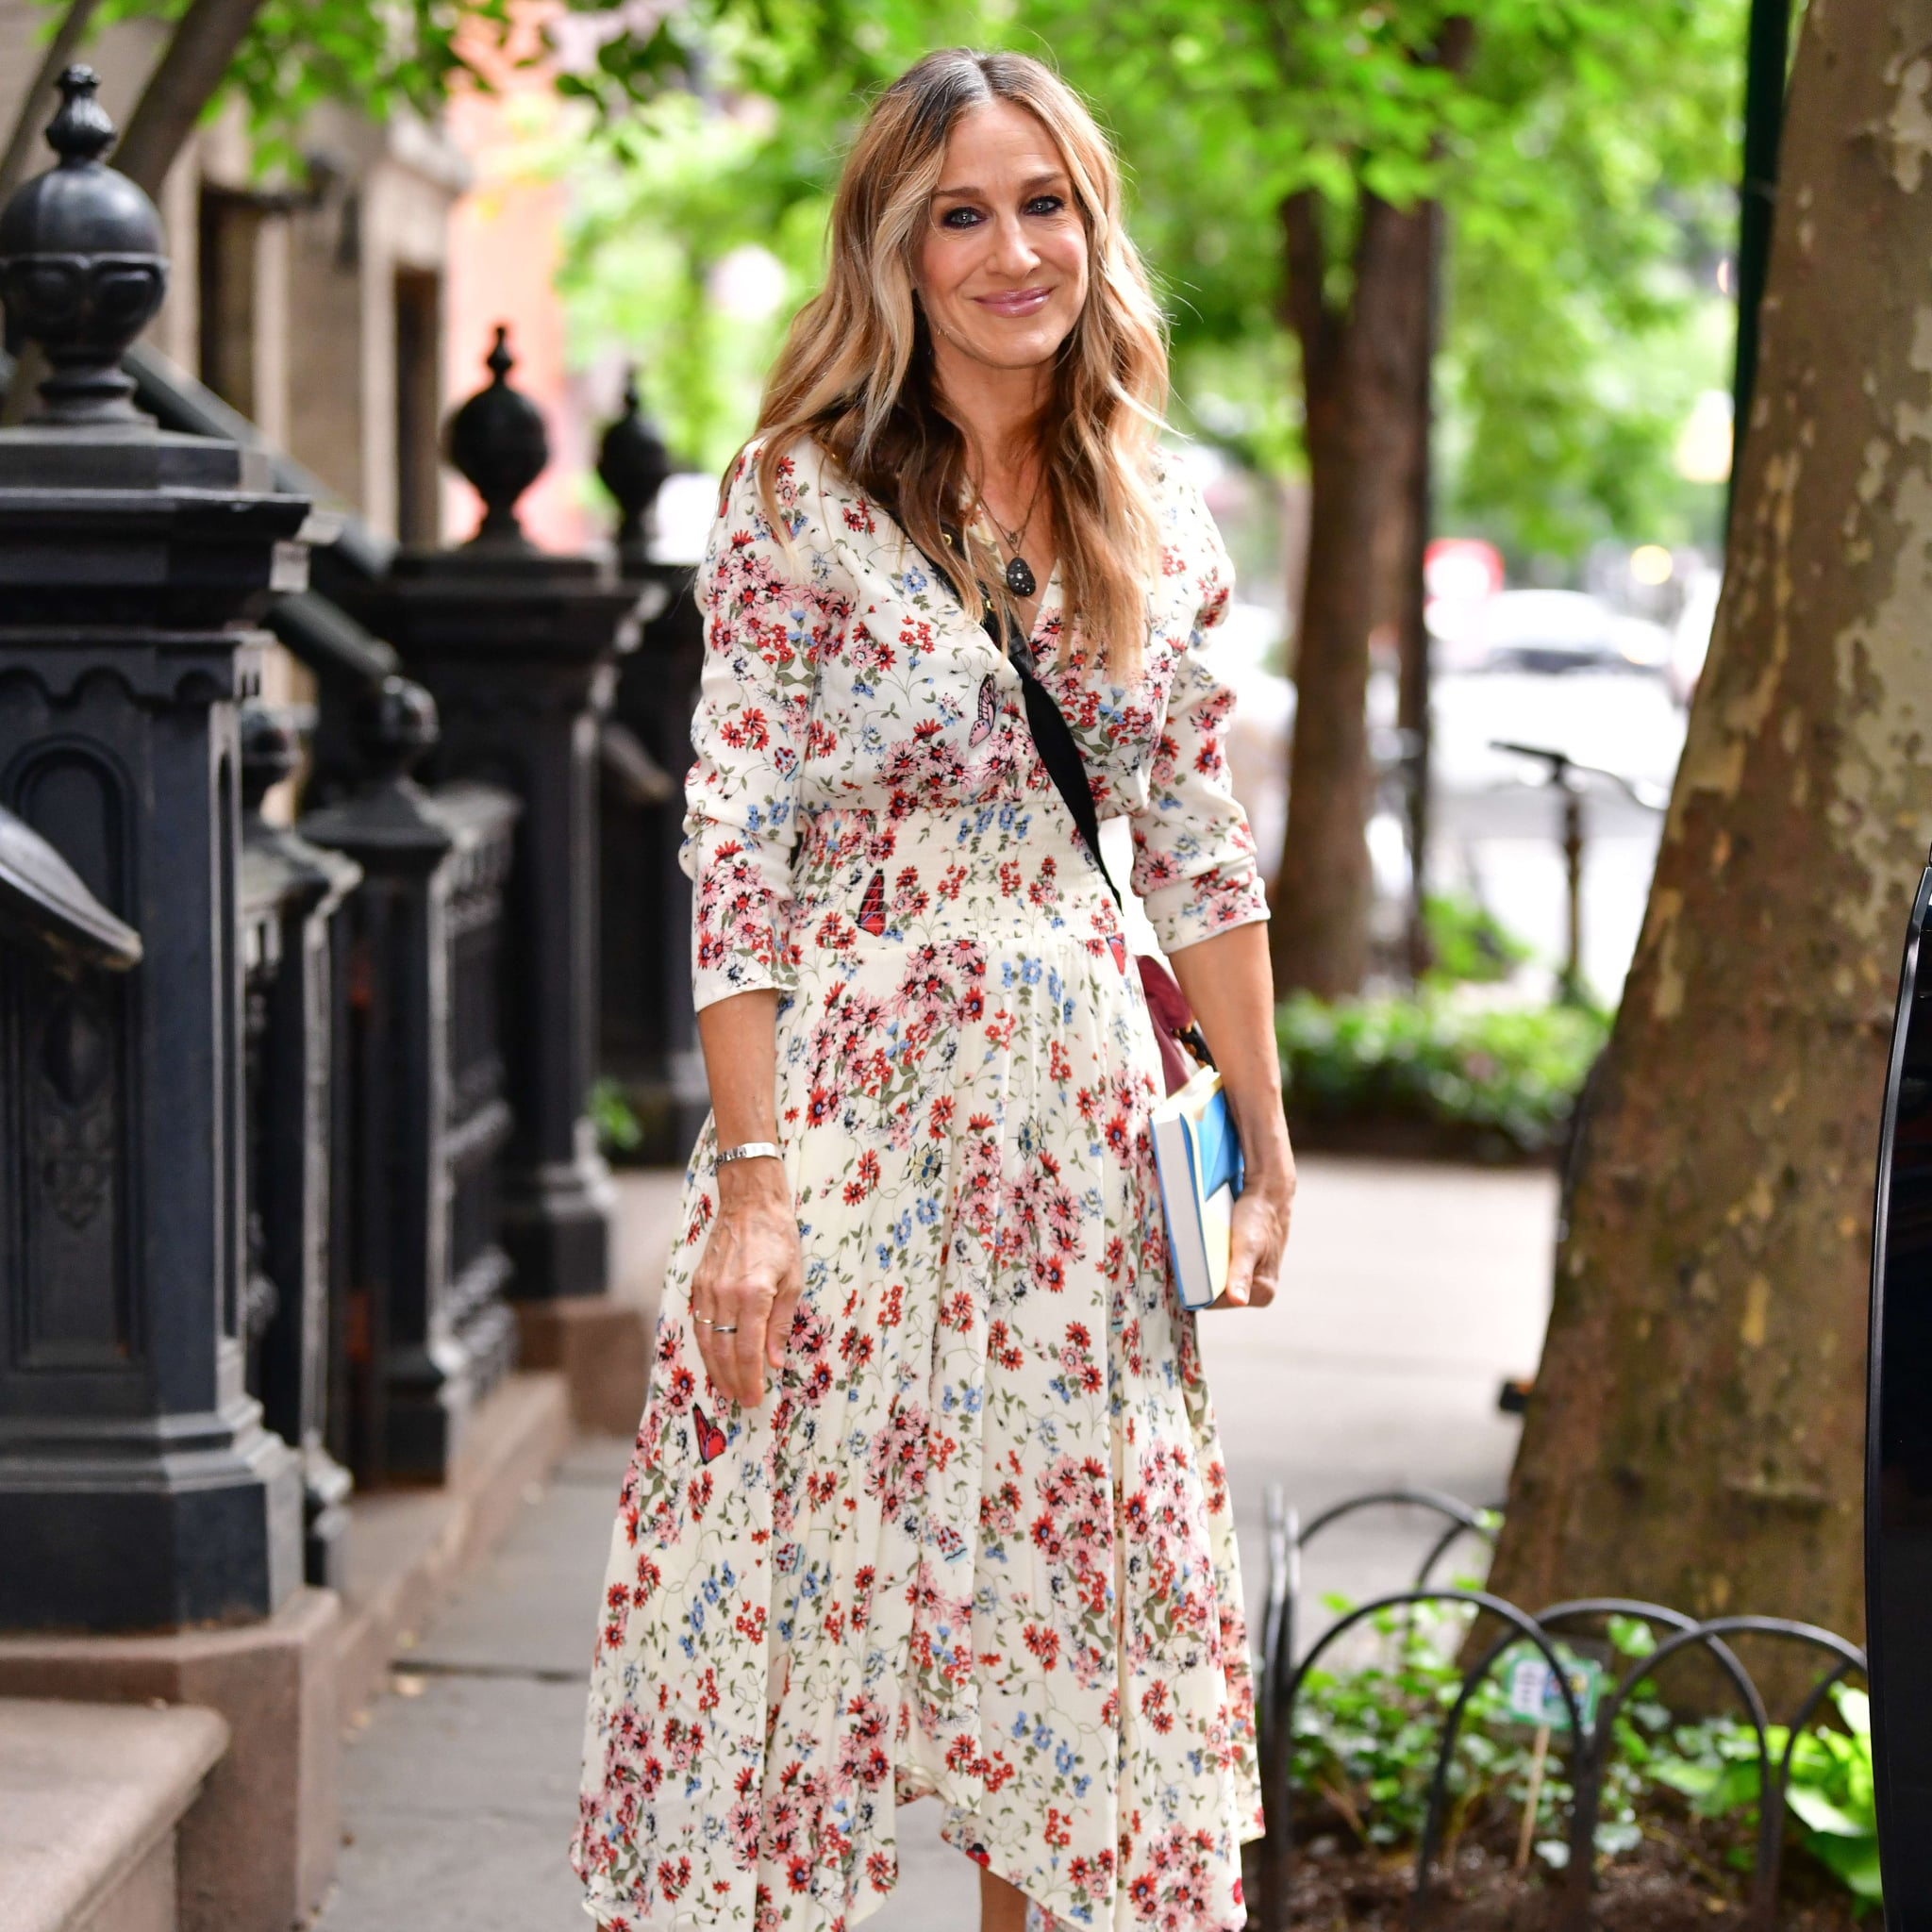 e2c6aeb8daf0 Shop It: Maje Rayne Handkerchief Midi Dress | Celebrity Dresses Summer 2018  | POPSUGAR Fashion Photo 3